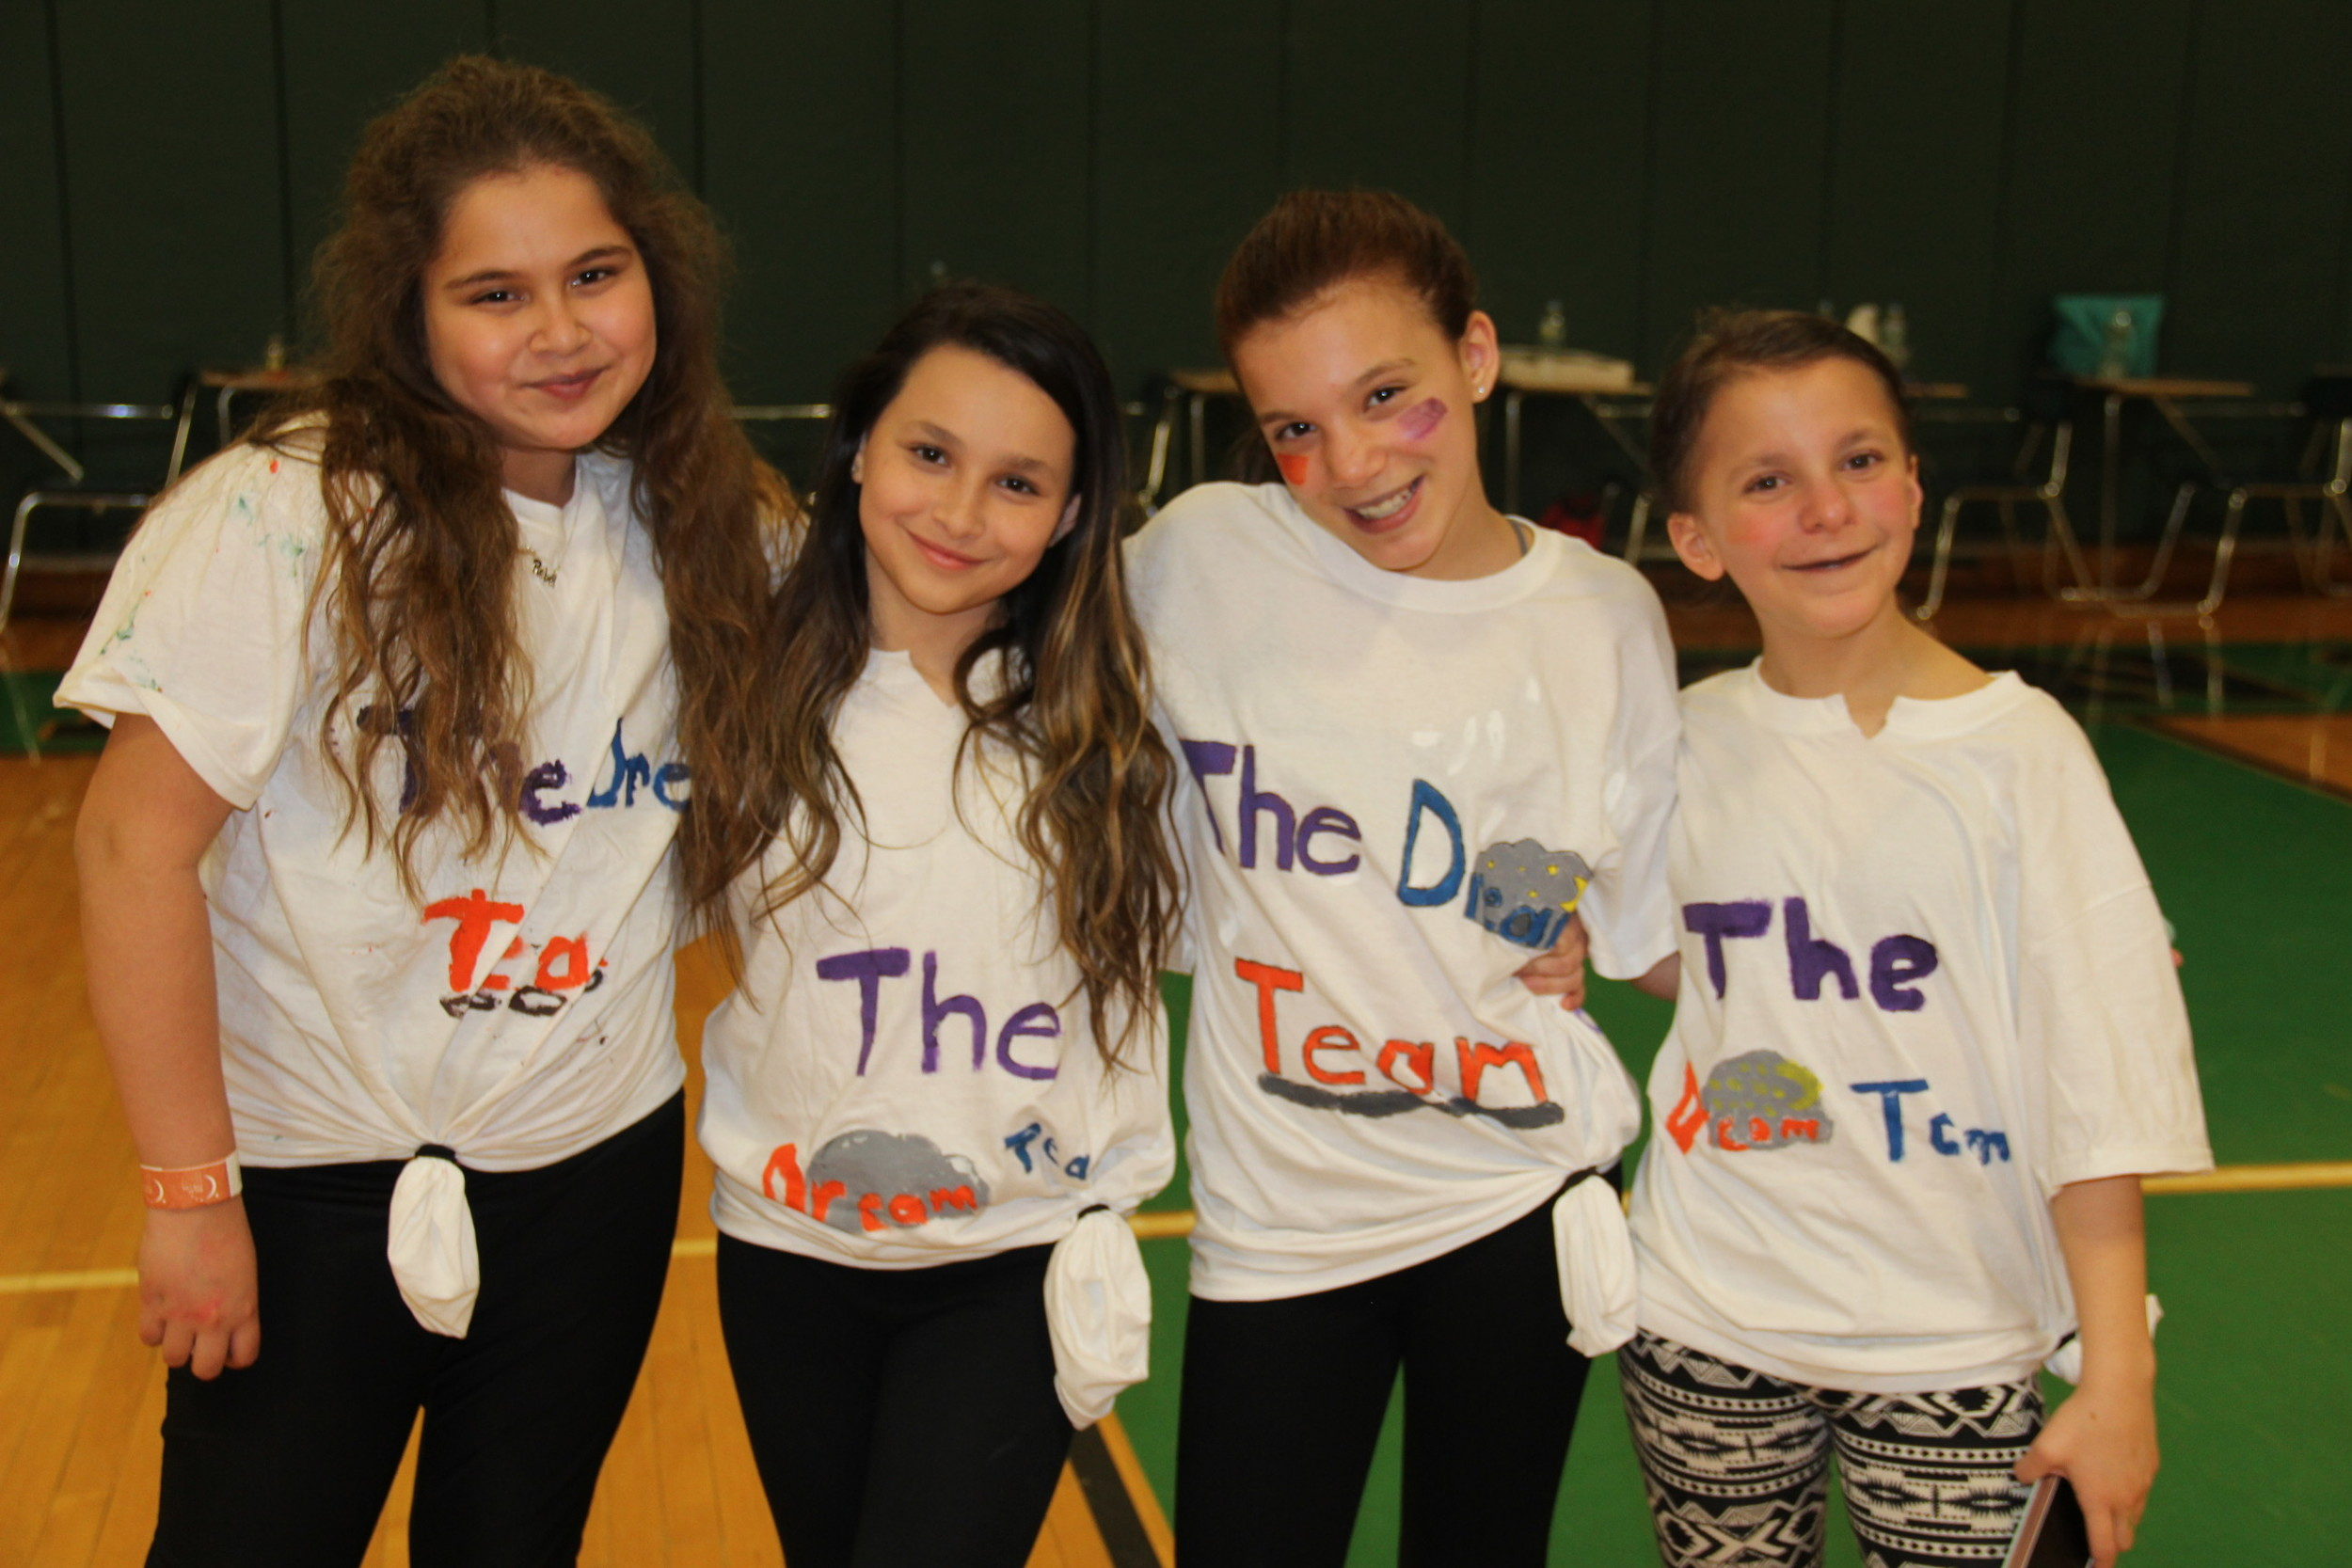 Sixth-graders Aria Khwaja, far left, Melinda Hosey, Nikolette Rodriguez and Michelina Lombardi made up the Dream Team.